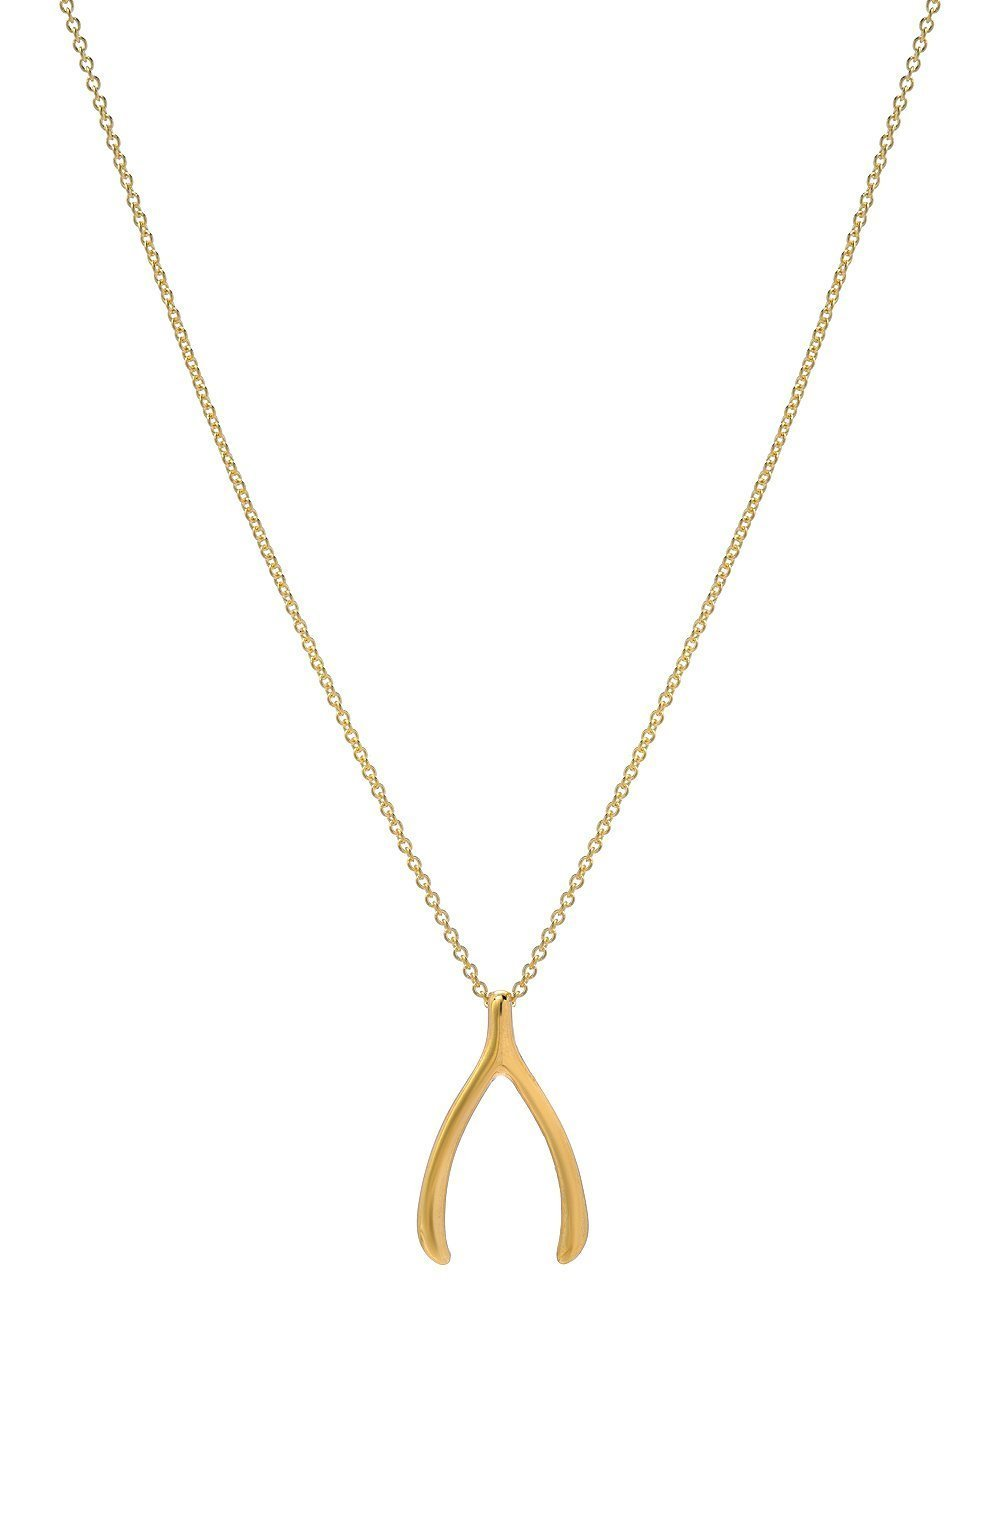 14k solid gold wishbone necklace